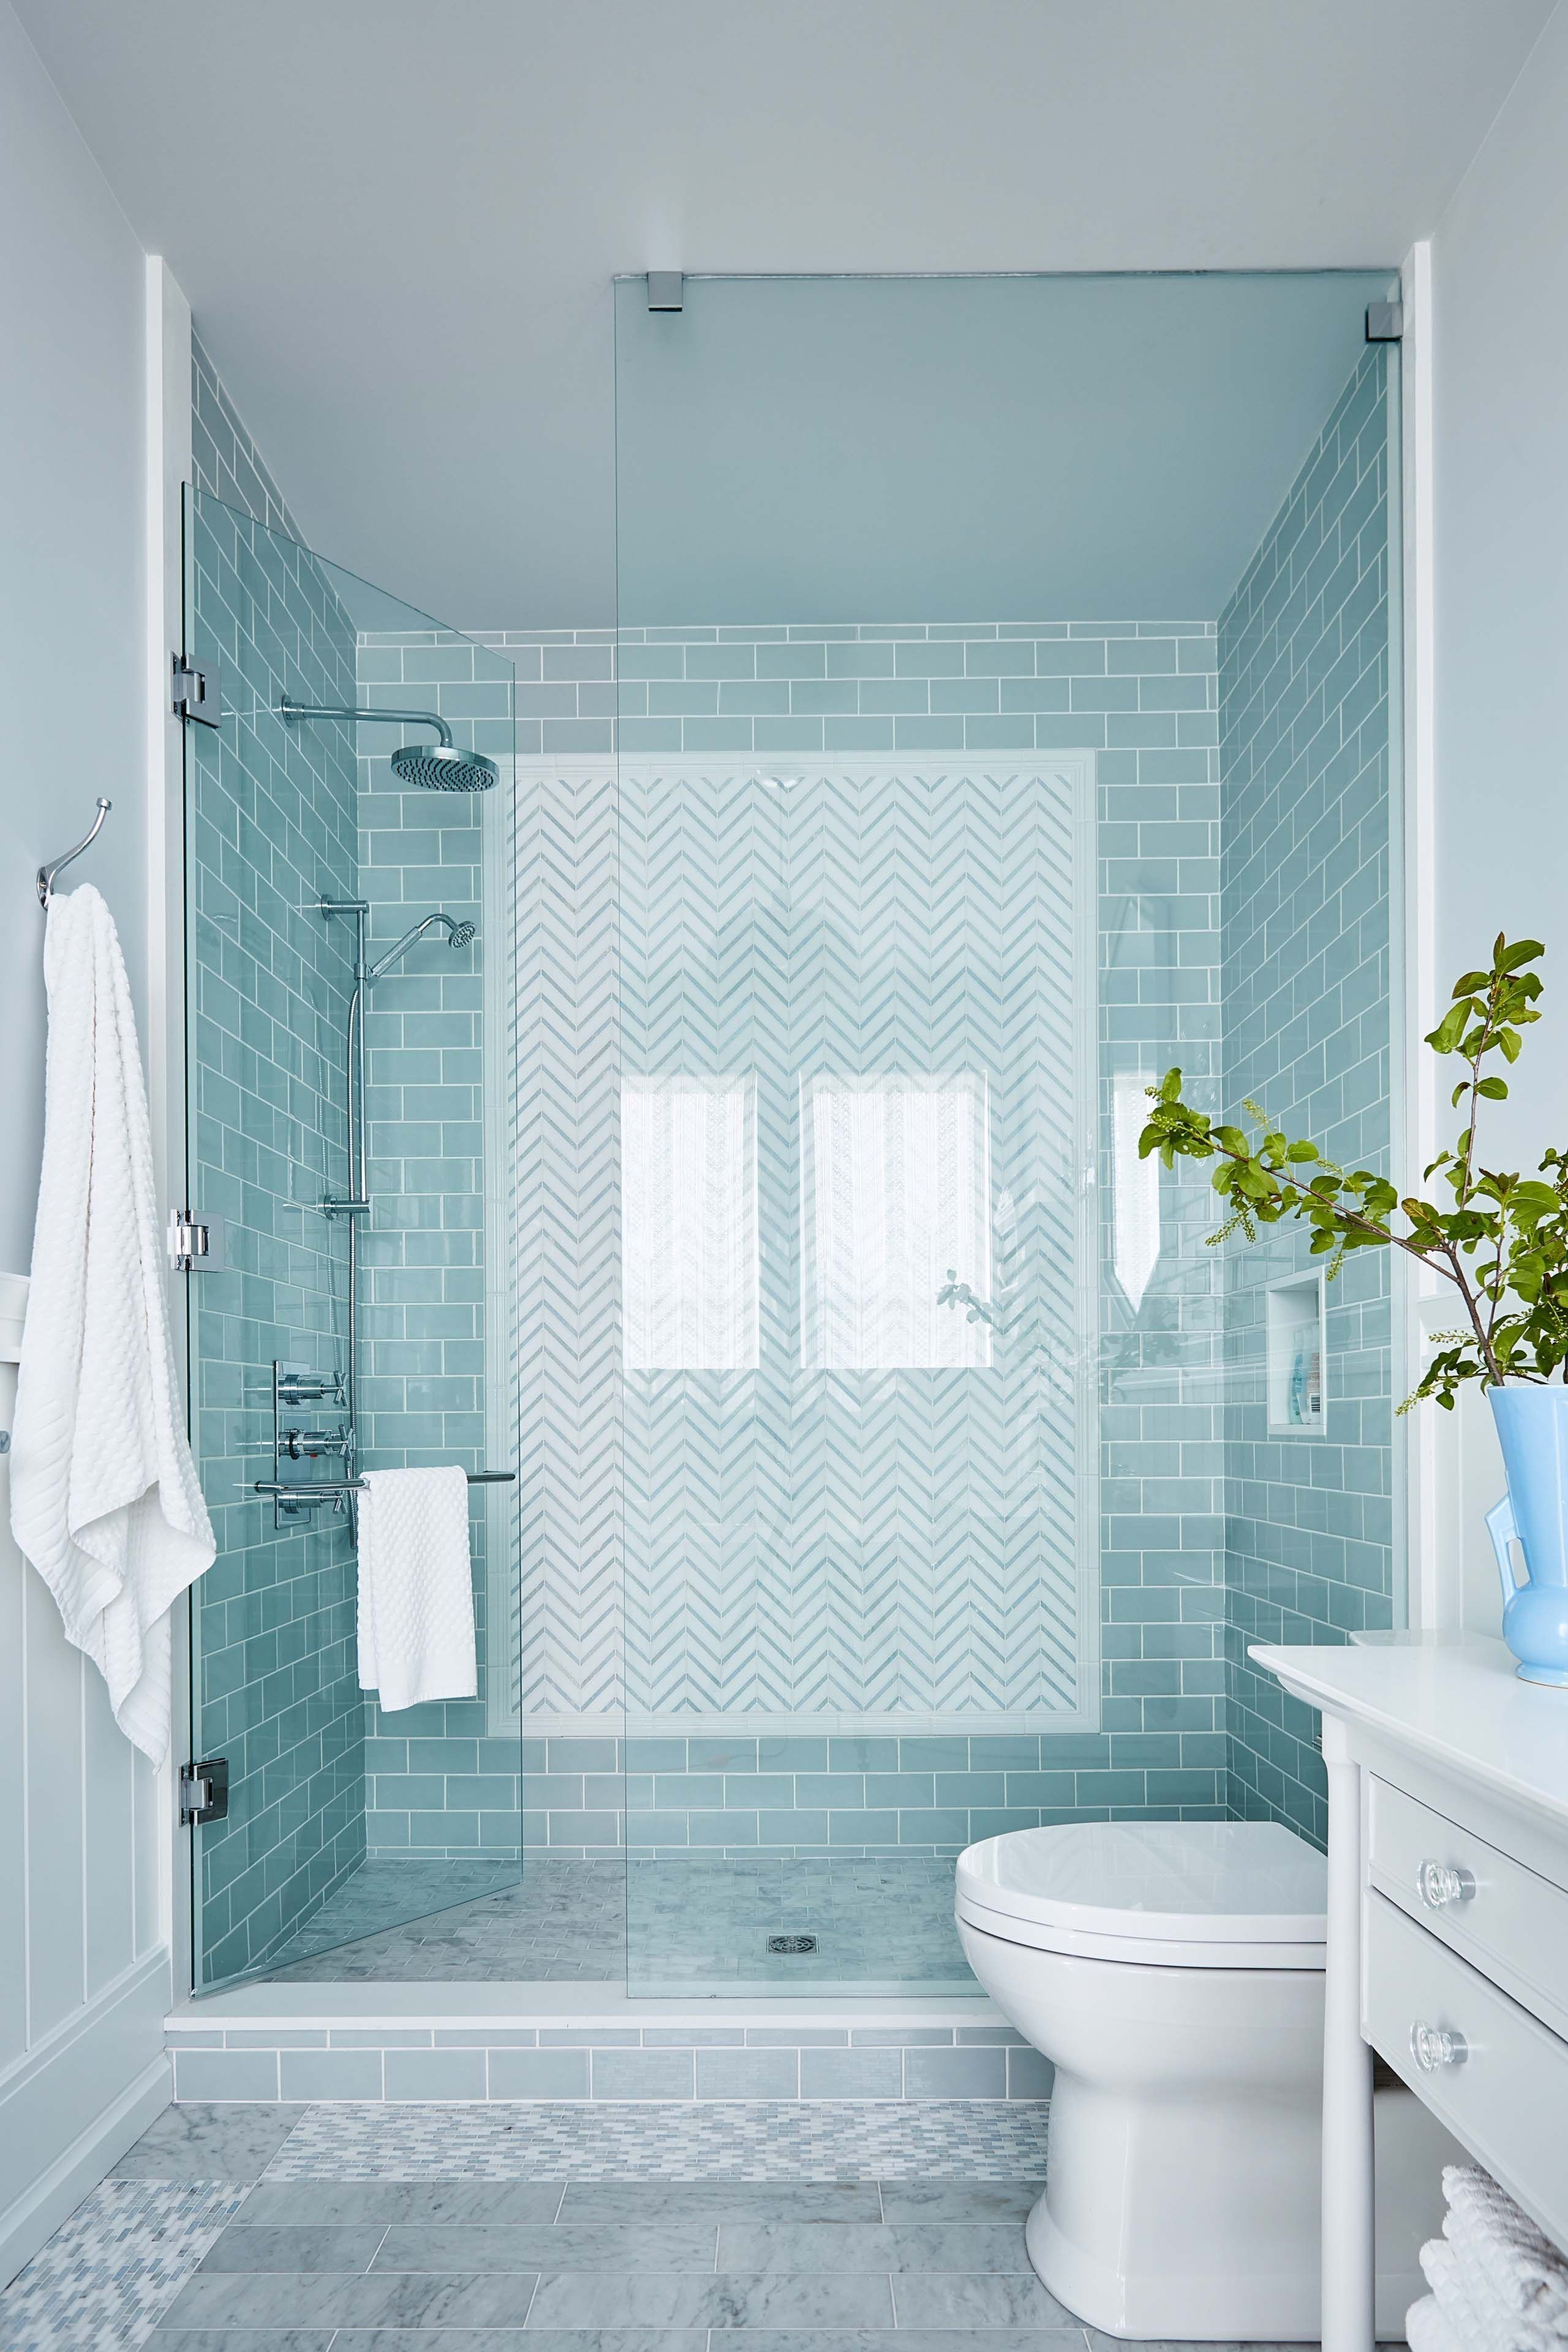 Bathroom Tile Ideas: Bathroom Tiles Design Beautiful Sarah Richardson S F The